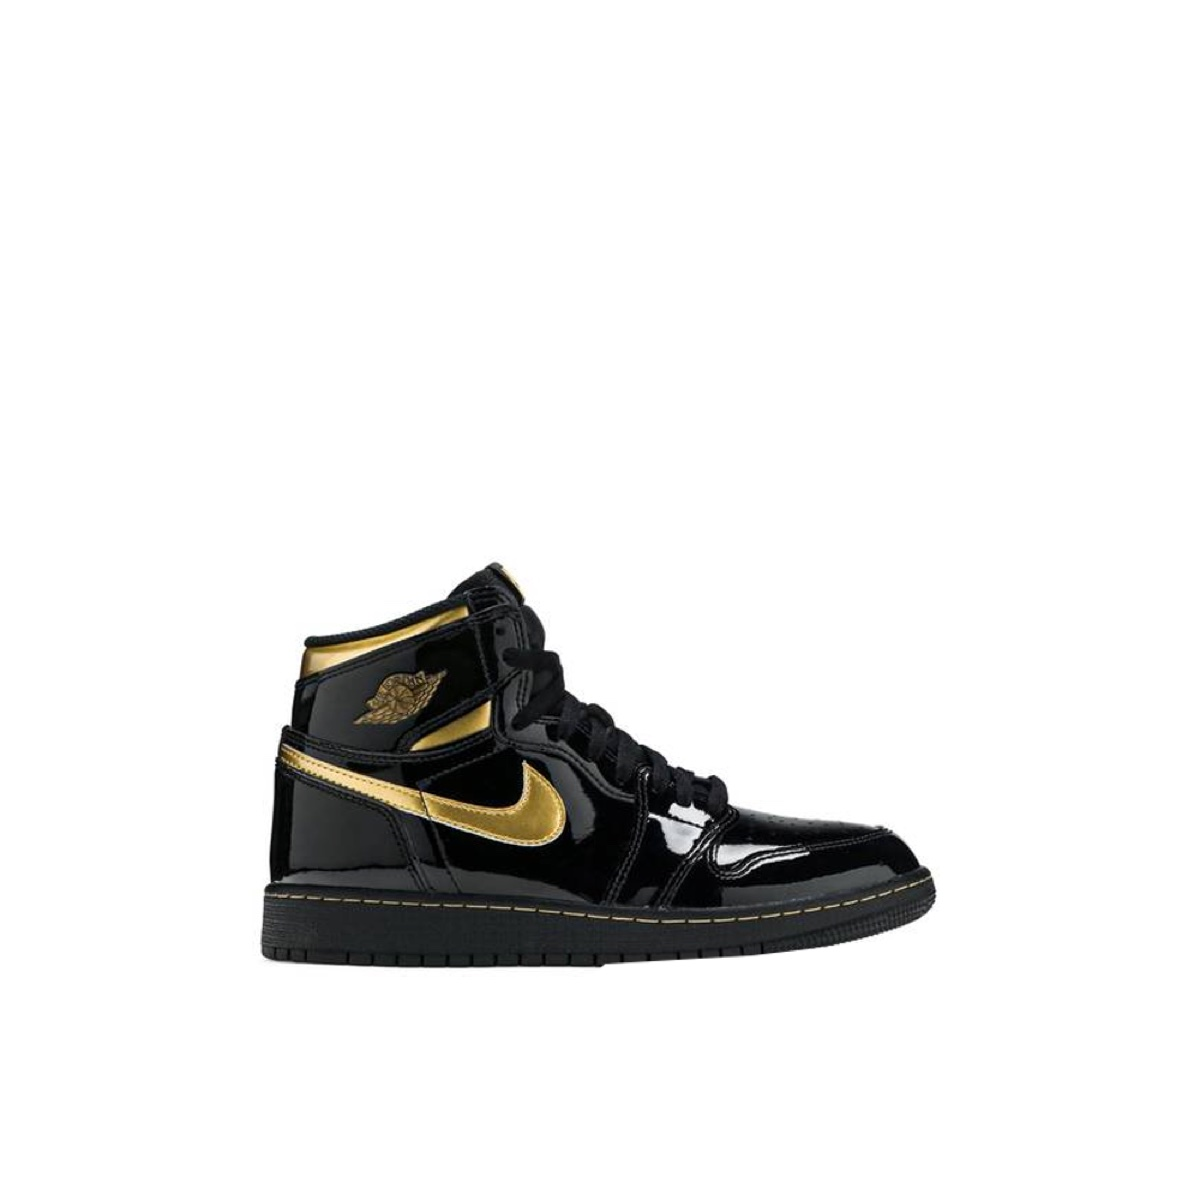 Jordan 1 Retro High OG Black Metallic Gold (GS)